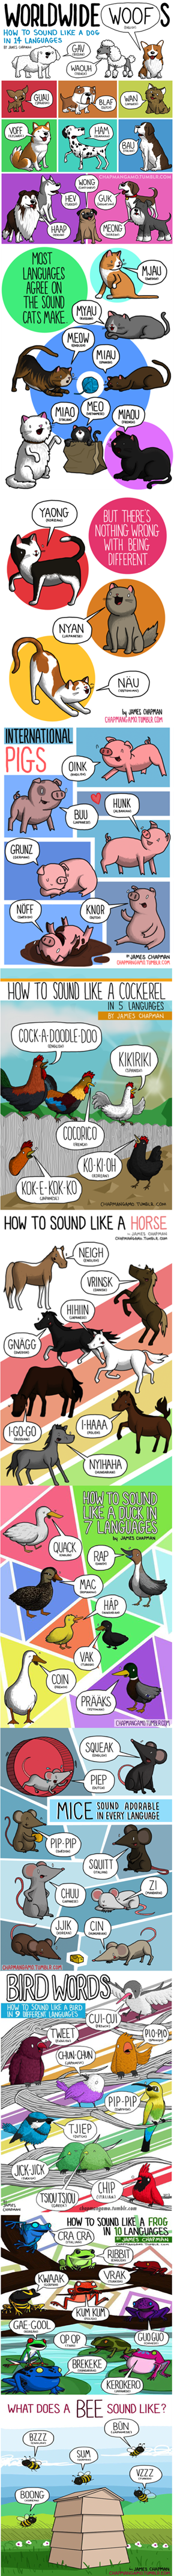 What Do Some Animals Sound Like in Other Languages?